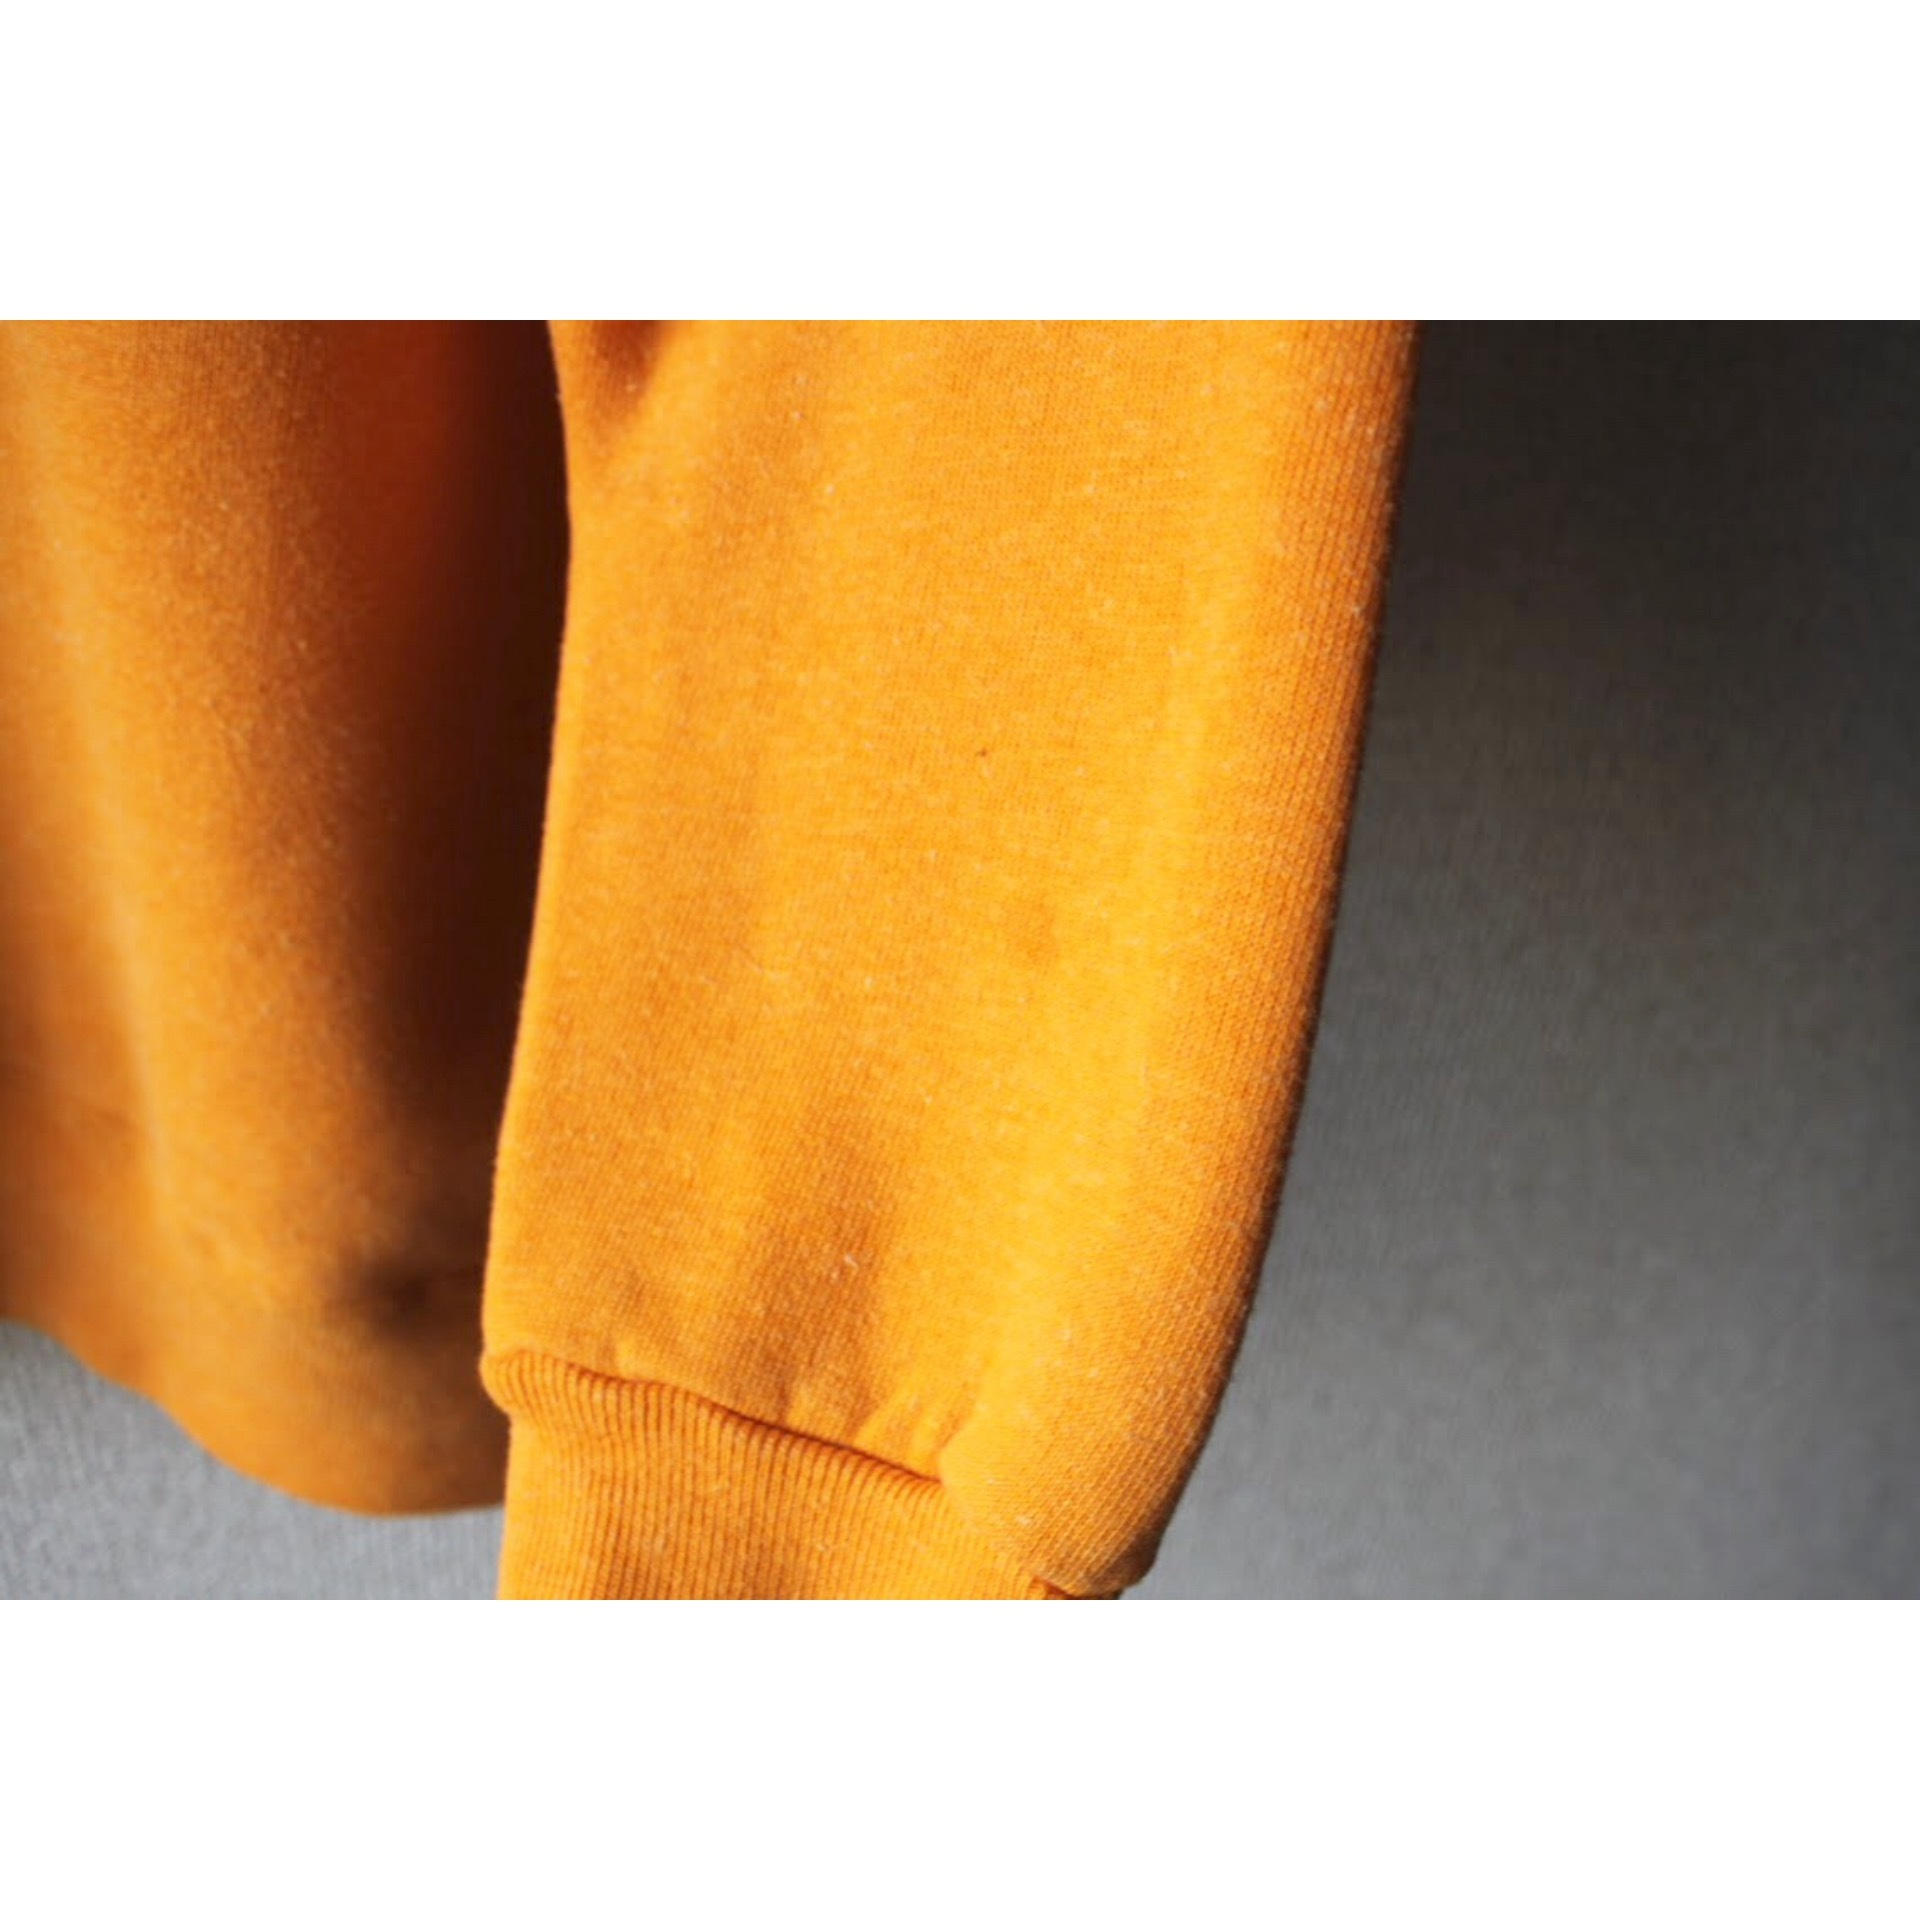 Vintage mustard yellow sweater by Champion